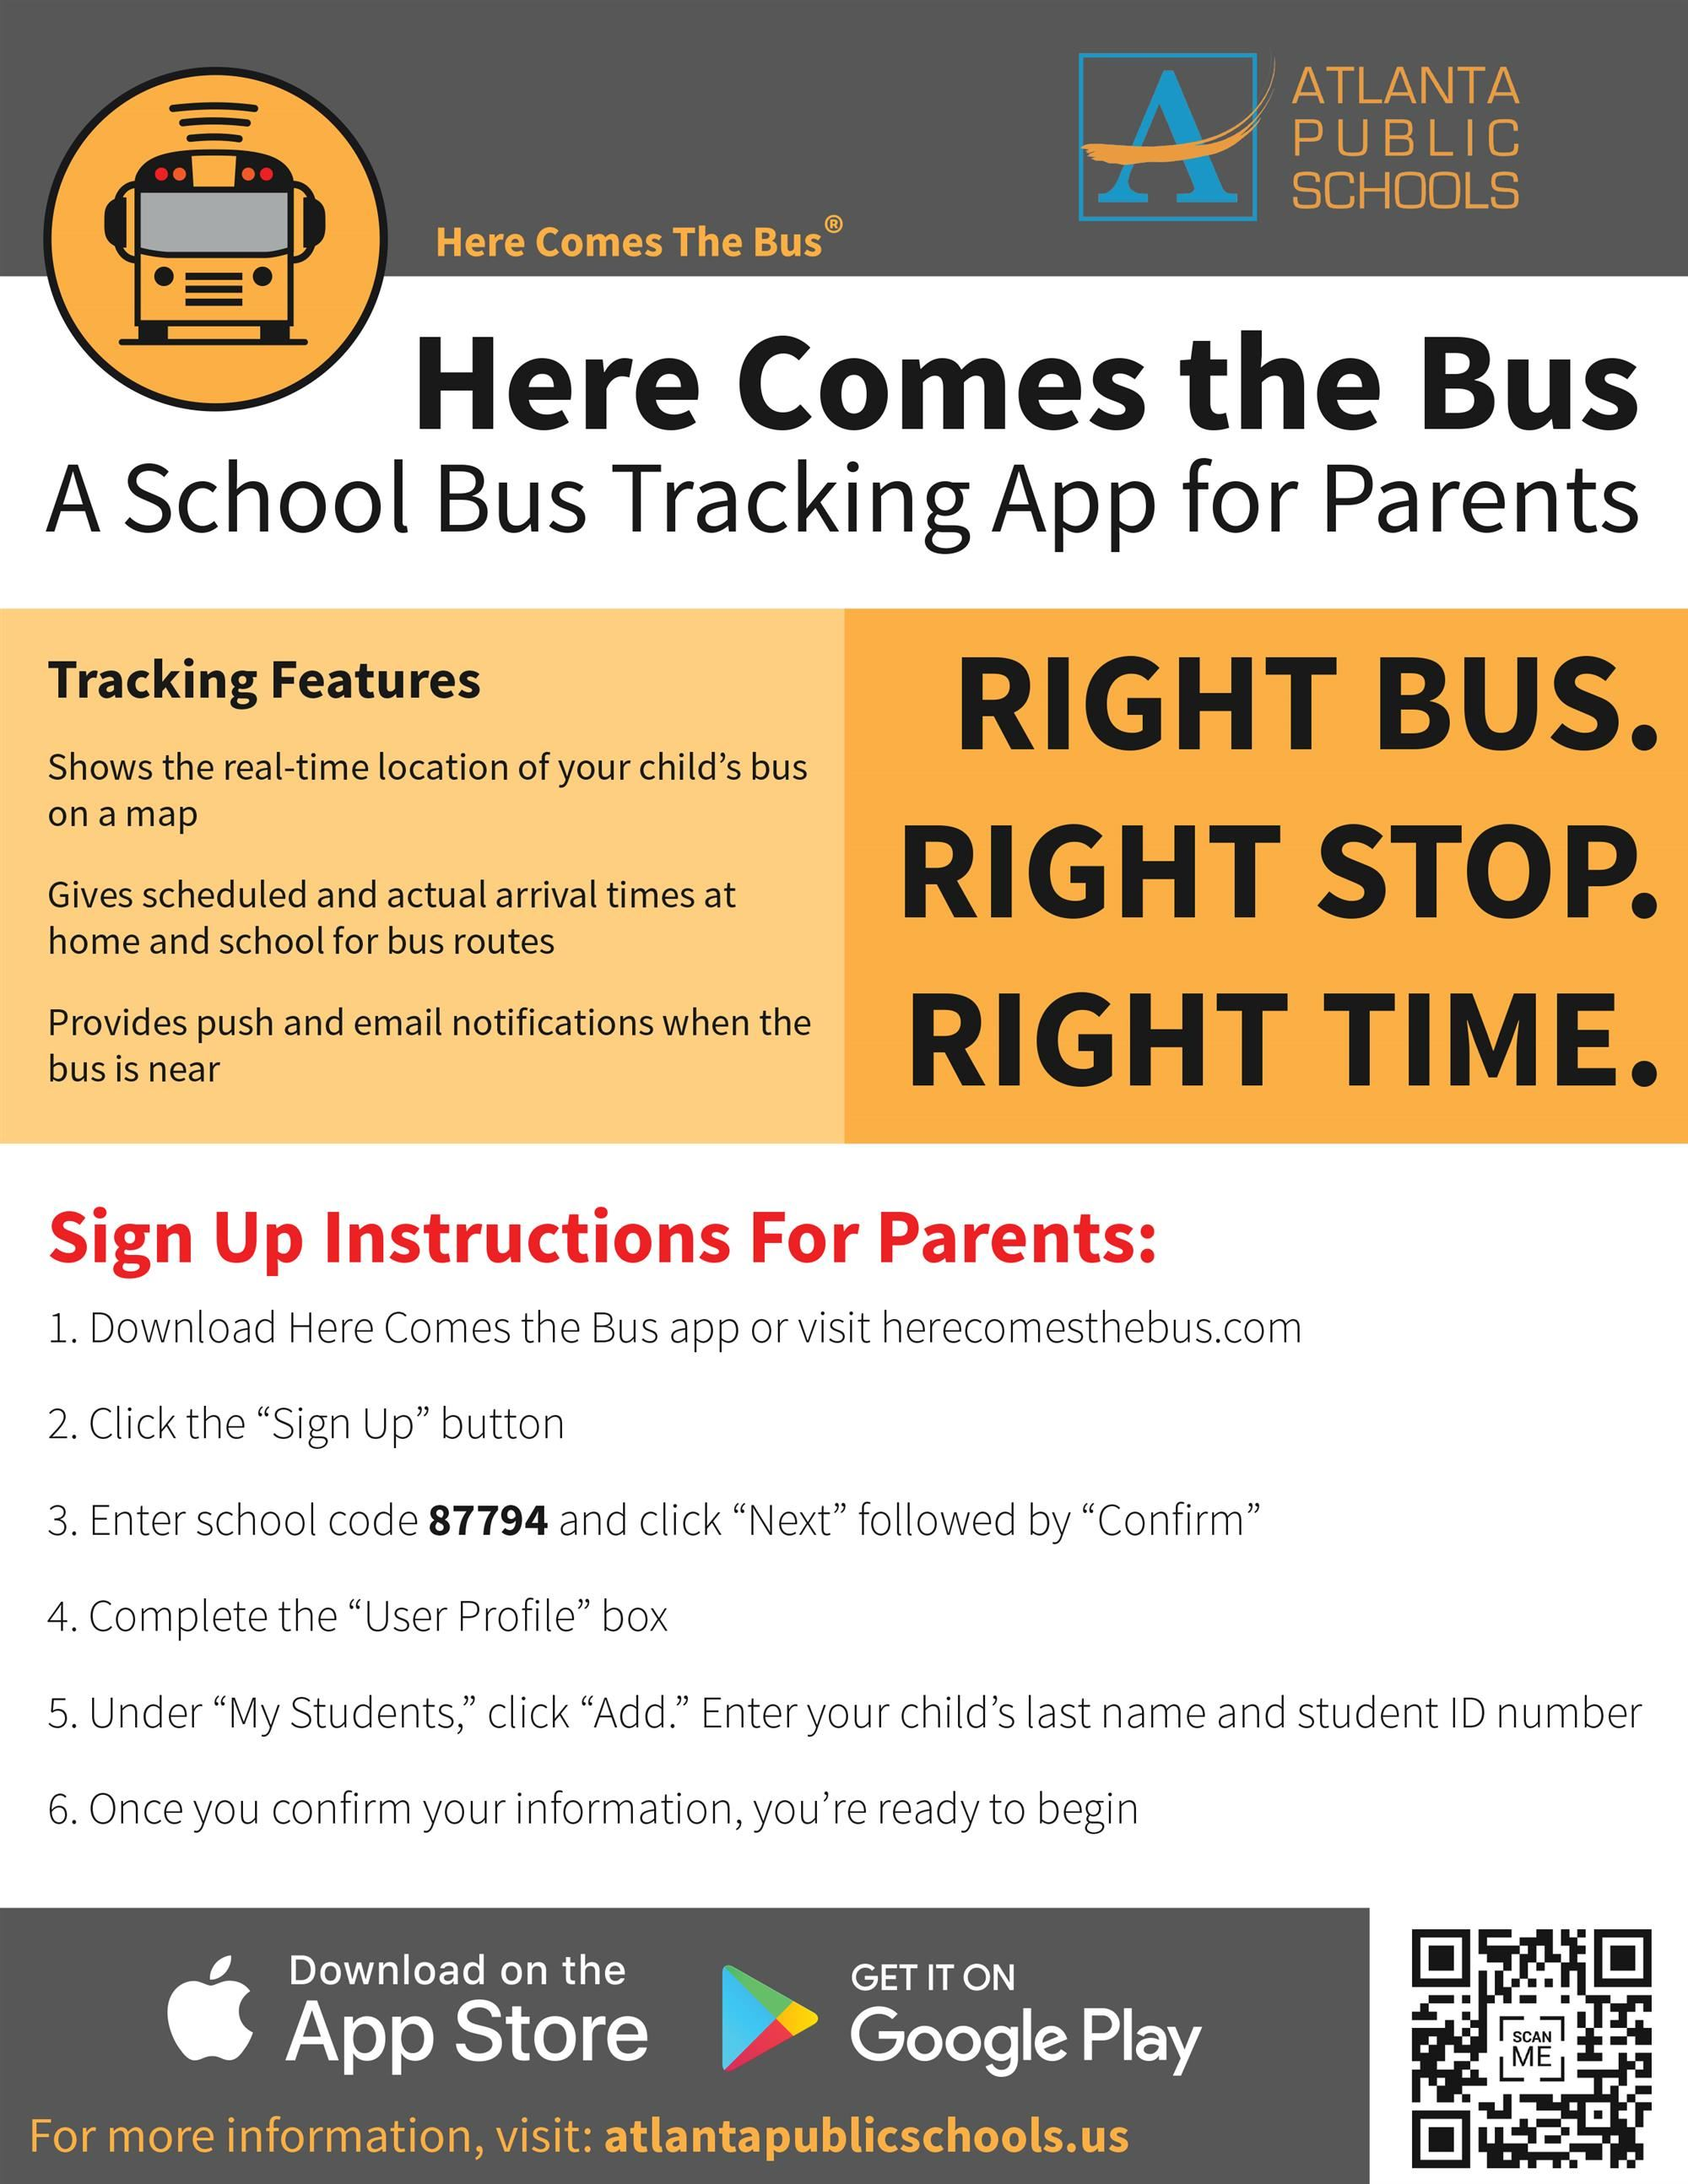 Here Comes the Bus Flyer